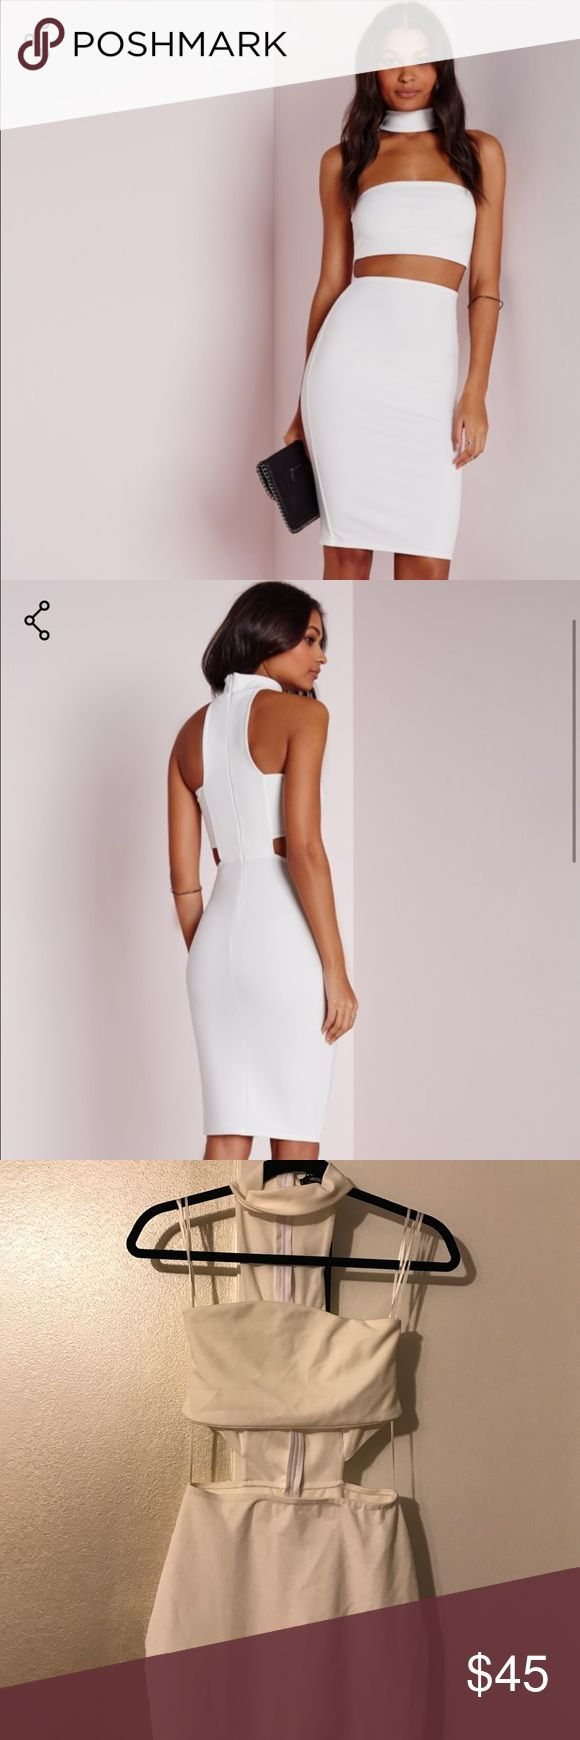 White Midi choker dress from Missguided This is a beautiful new with tags MissGuided dress! It has a choker attached to the dress which connects by zipper! It is new with tags and is in a US size 4. Missguided Dresses Midi